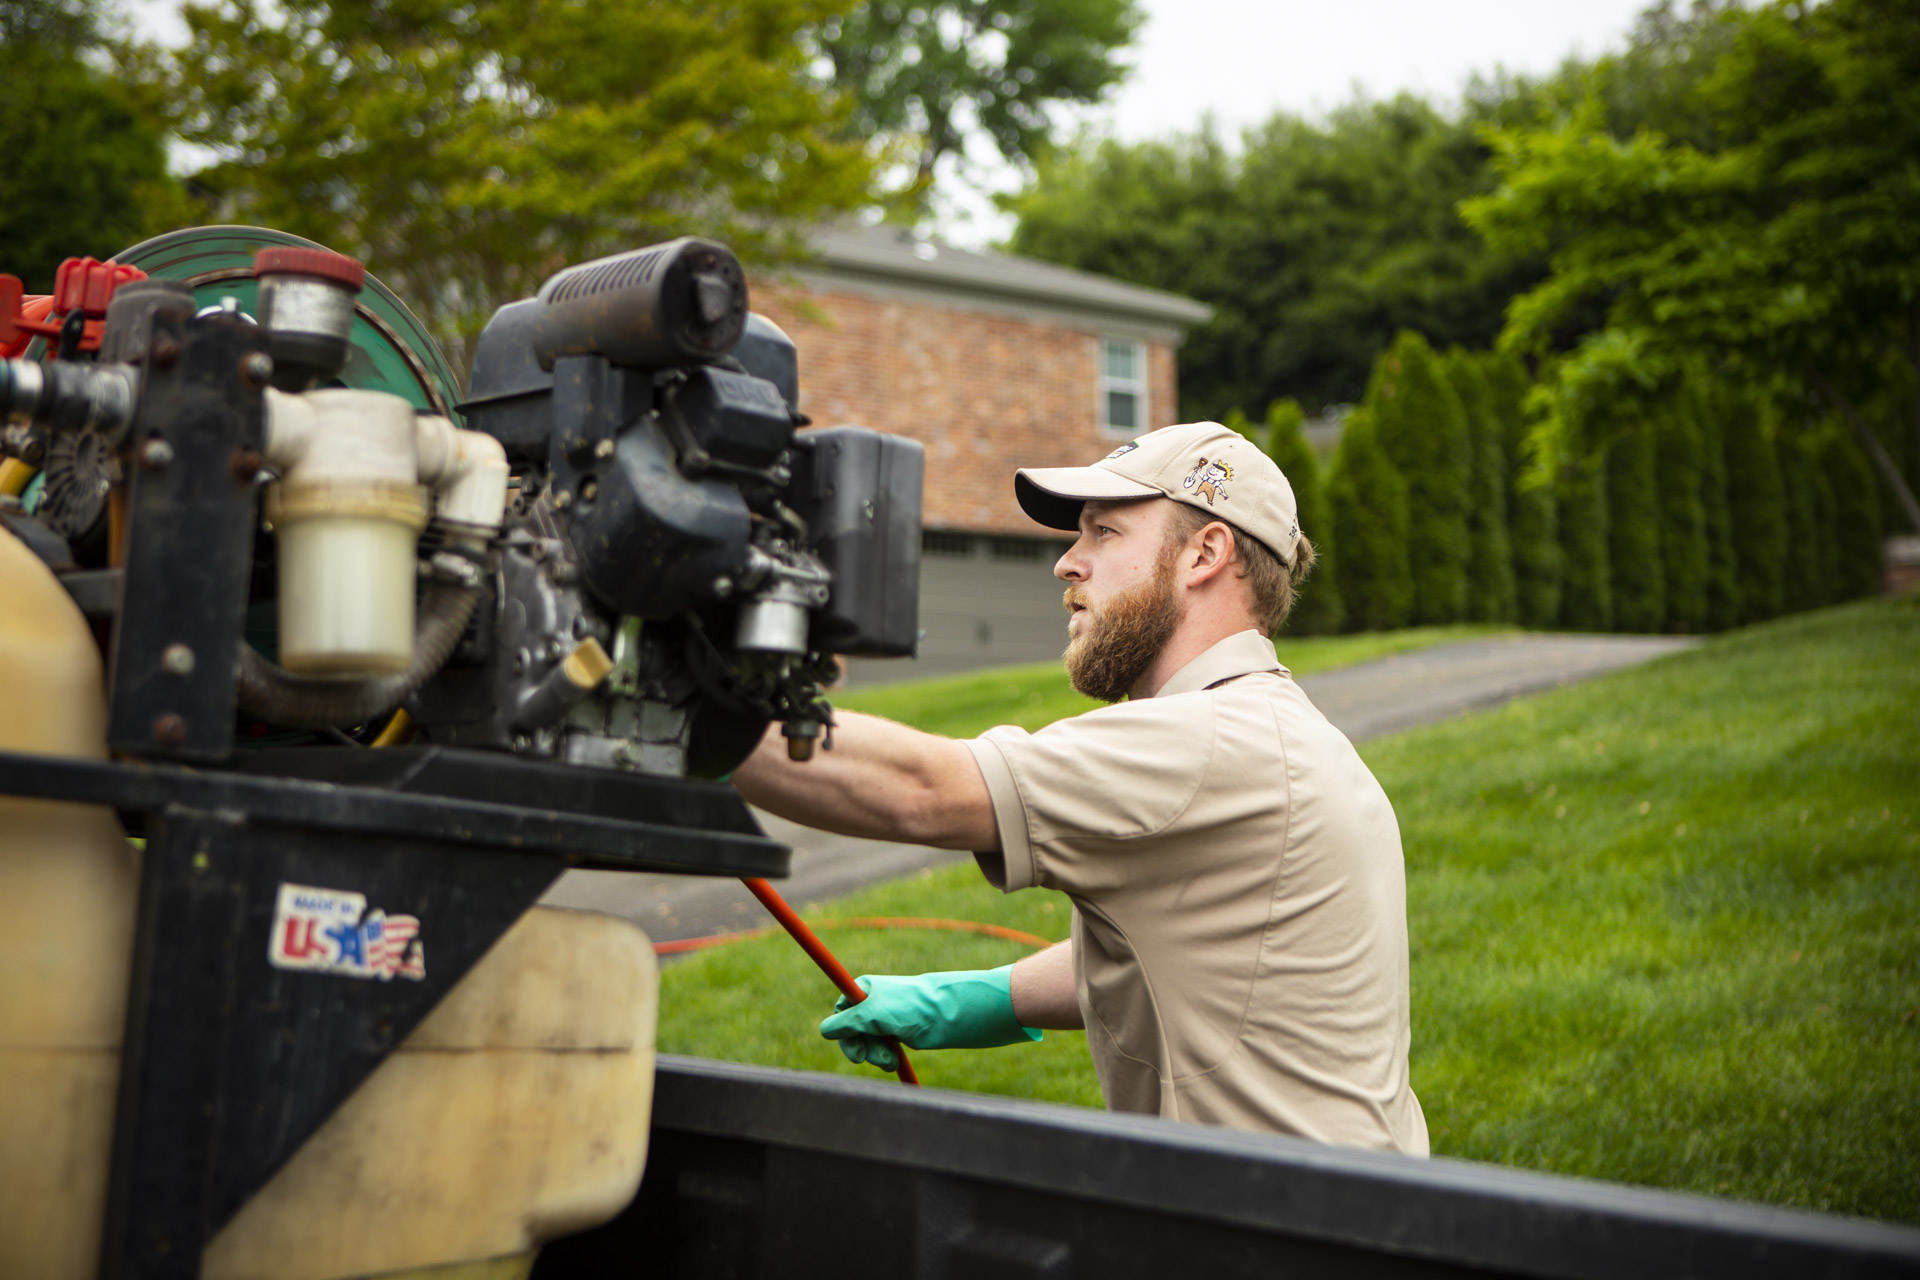 Why Hospitality & Restaurant Workers Are Perfect for the Lawn & Landscape Industry